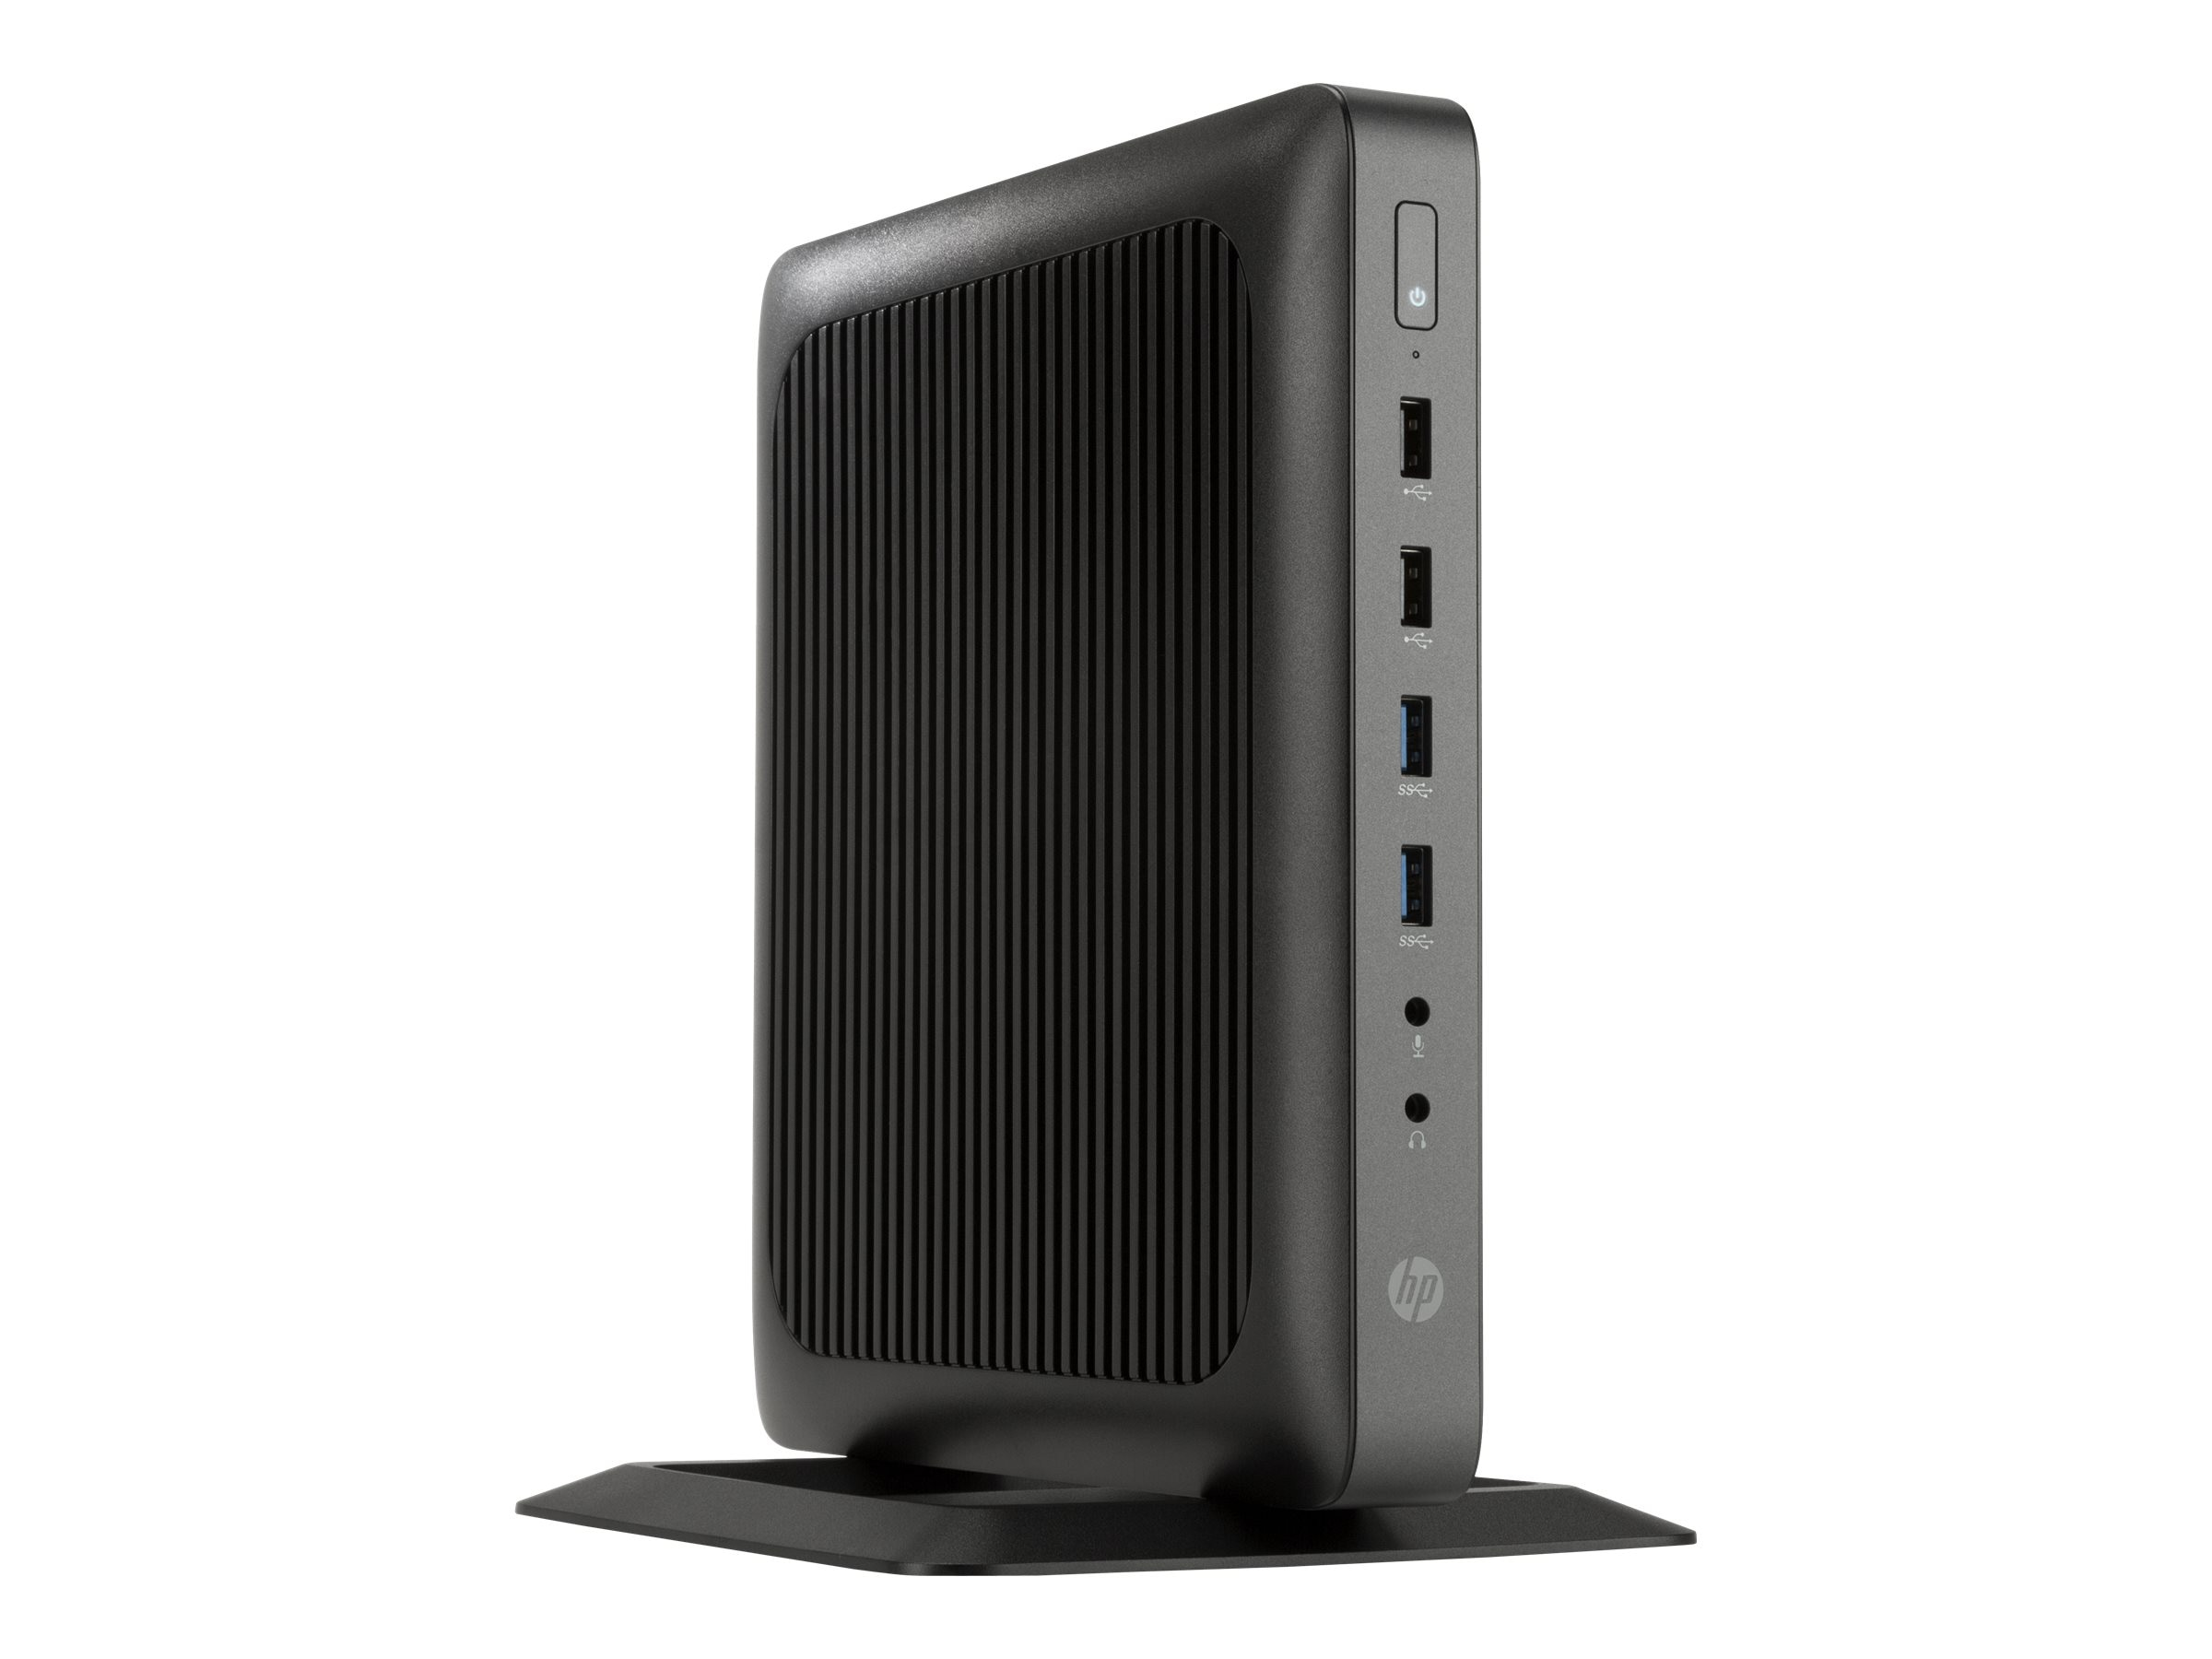 HP t620 Flexible Thin Client AMD QC GX-415GA 1.5GHz 8GB 64GB Flash HD8330E VGA W10 IoT, V2V55UA#ABA